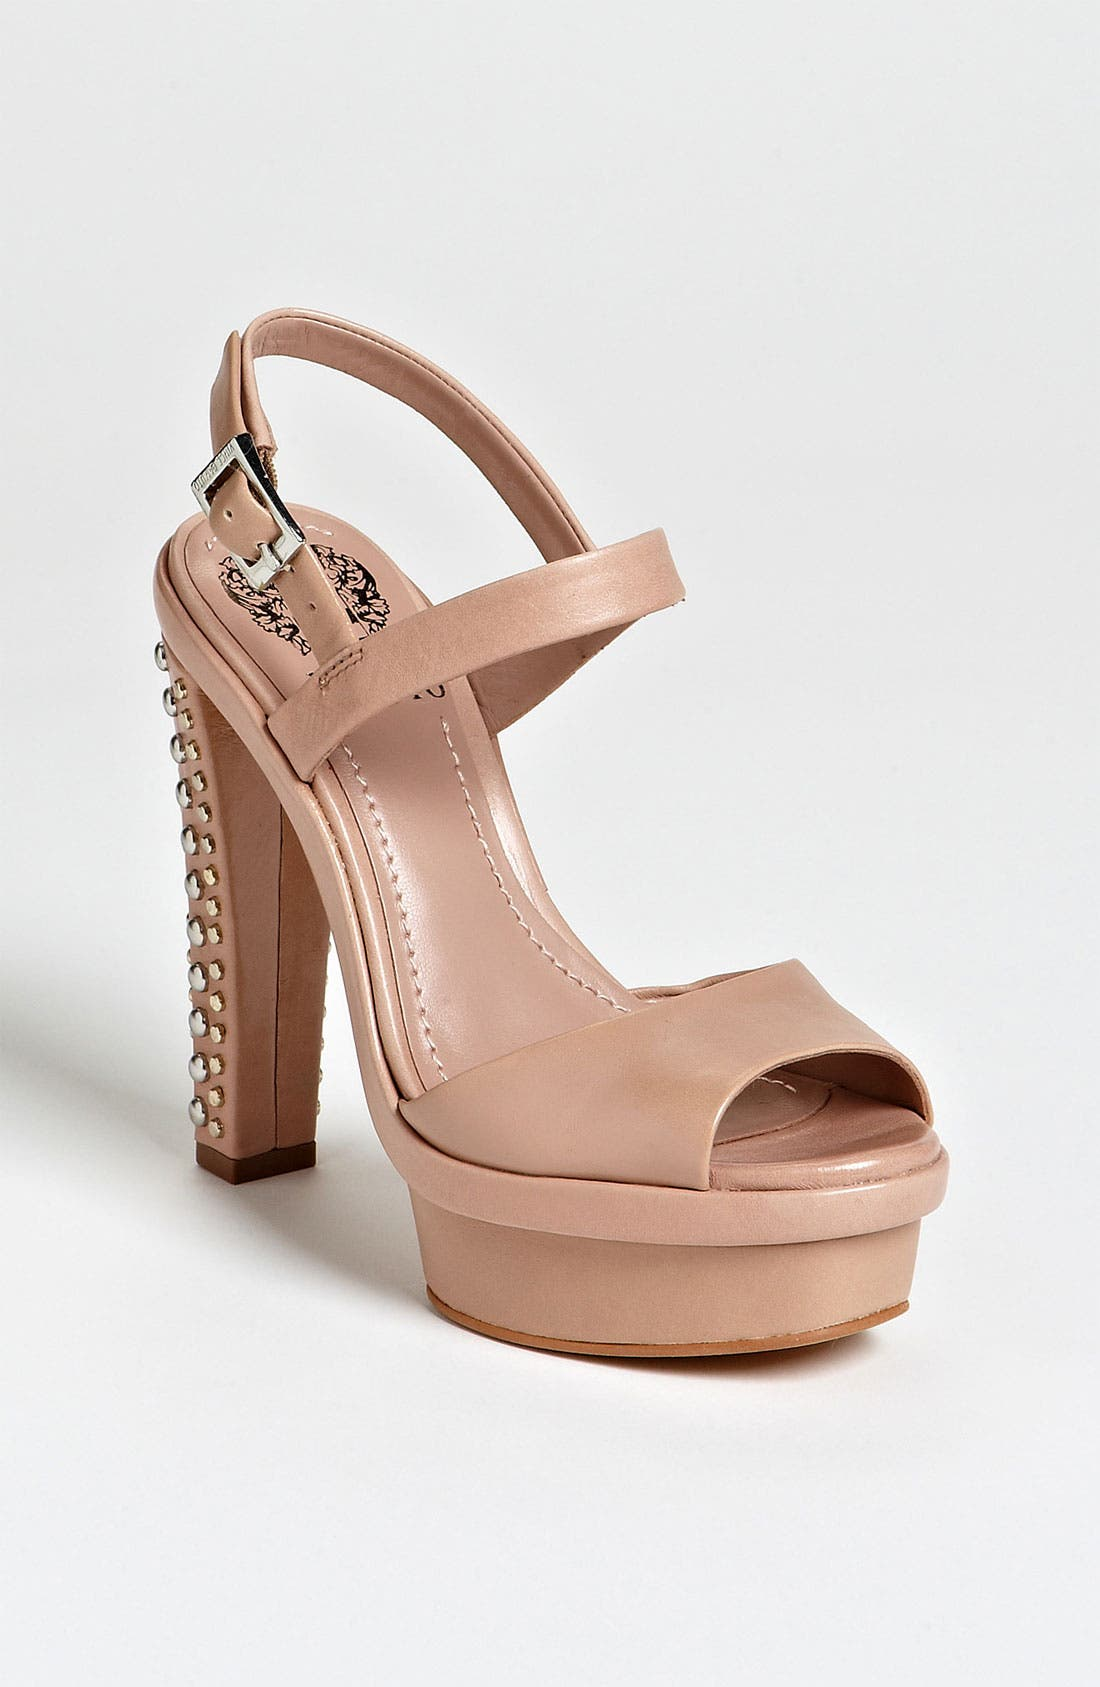 Alternate Image 1 Selected - Vince Camuto 'Cairo' Sandal